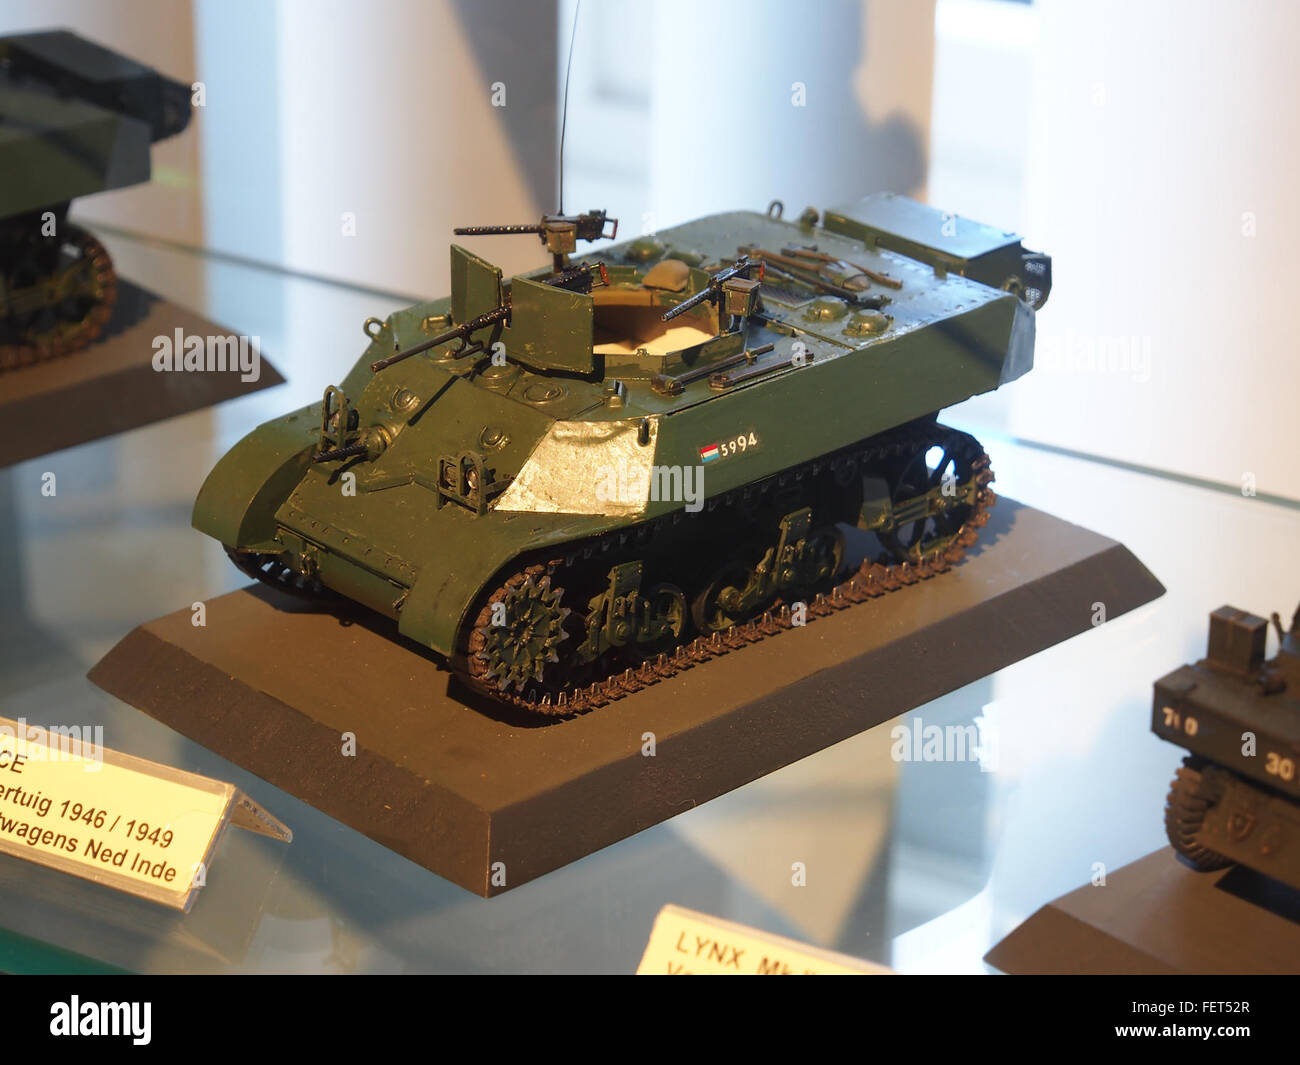 Model at the Dutch Cavalry Museum, Bernhardkazerne pic5 - Stock Image